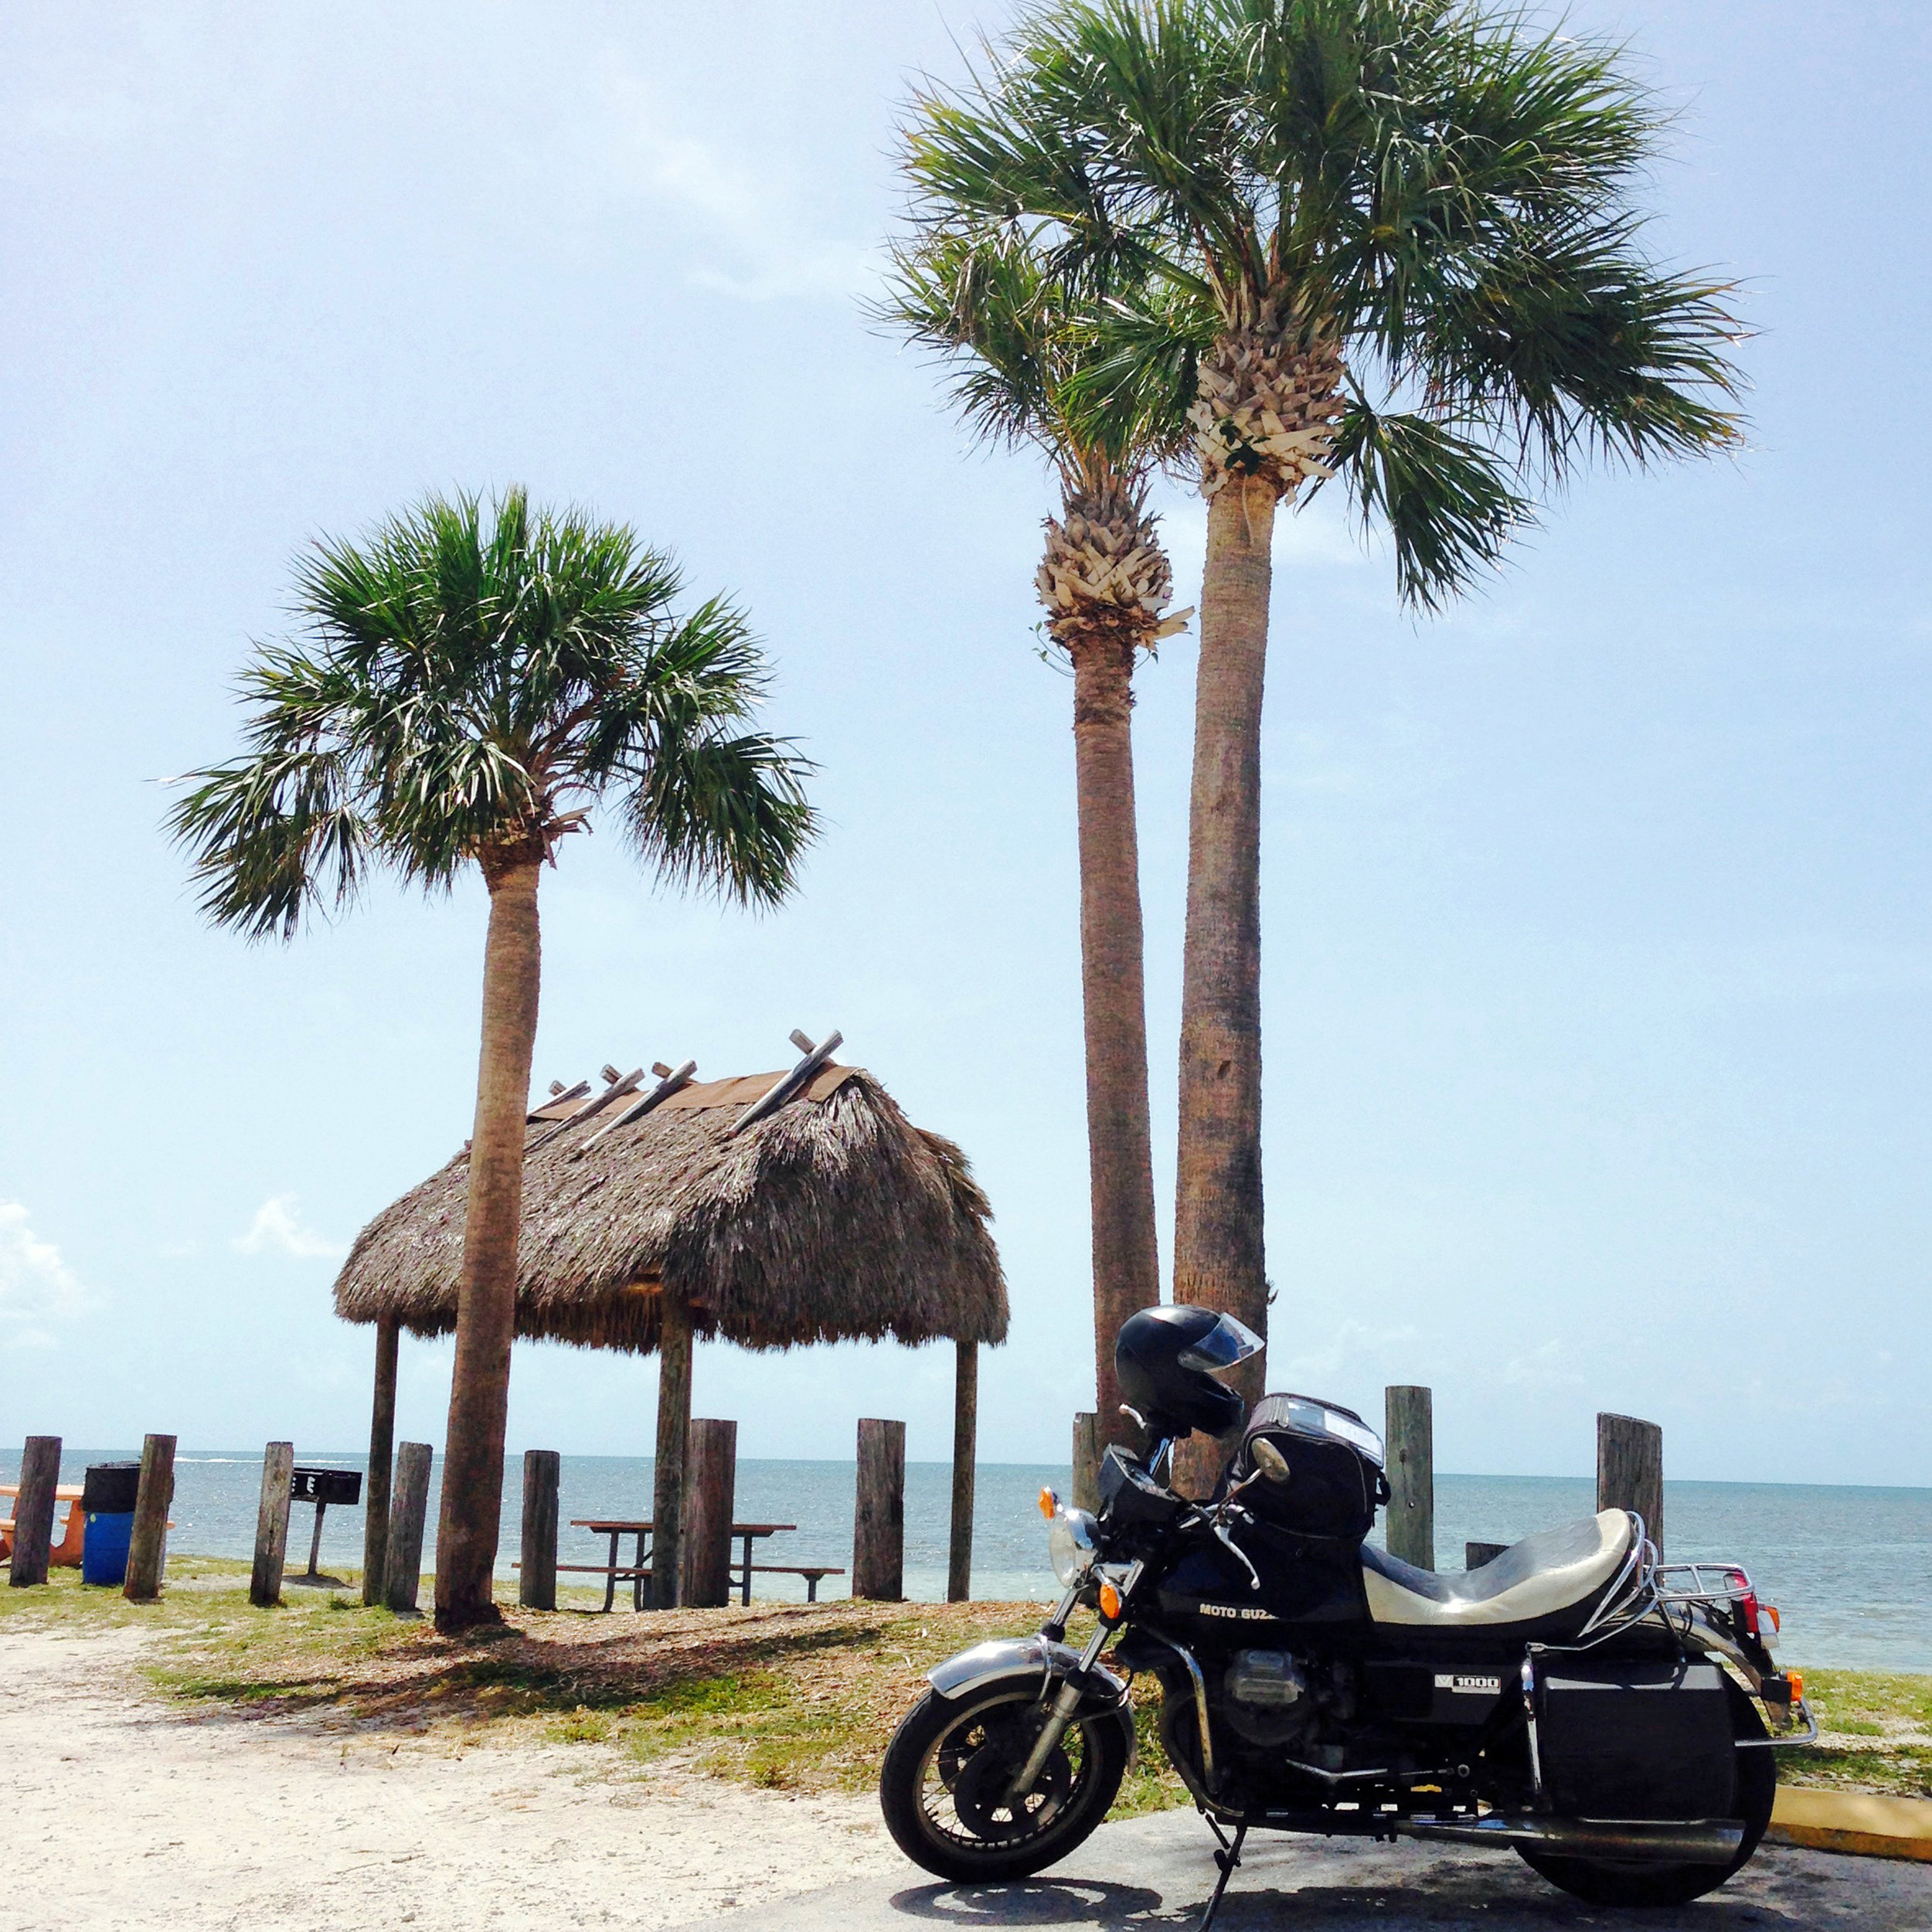 Moto Guzzi op Highway 1, richting Key West